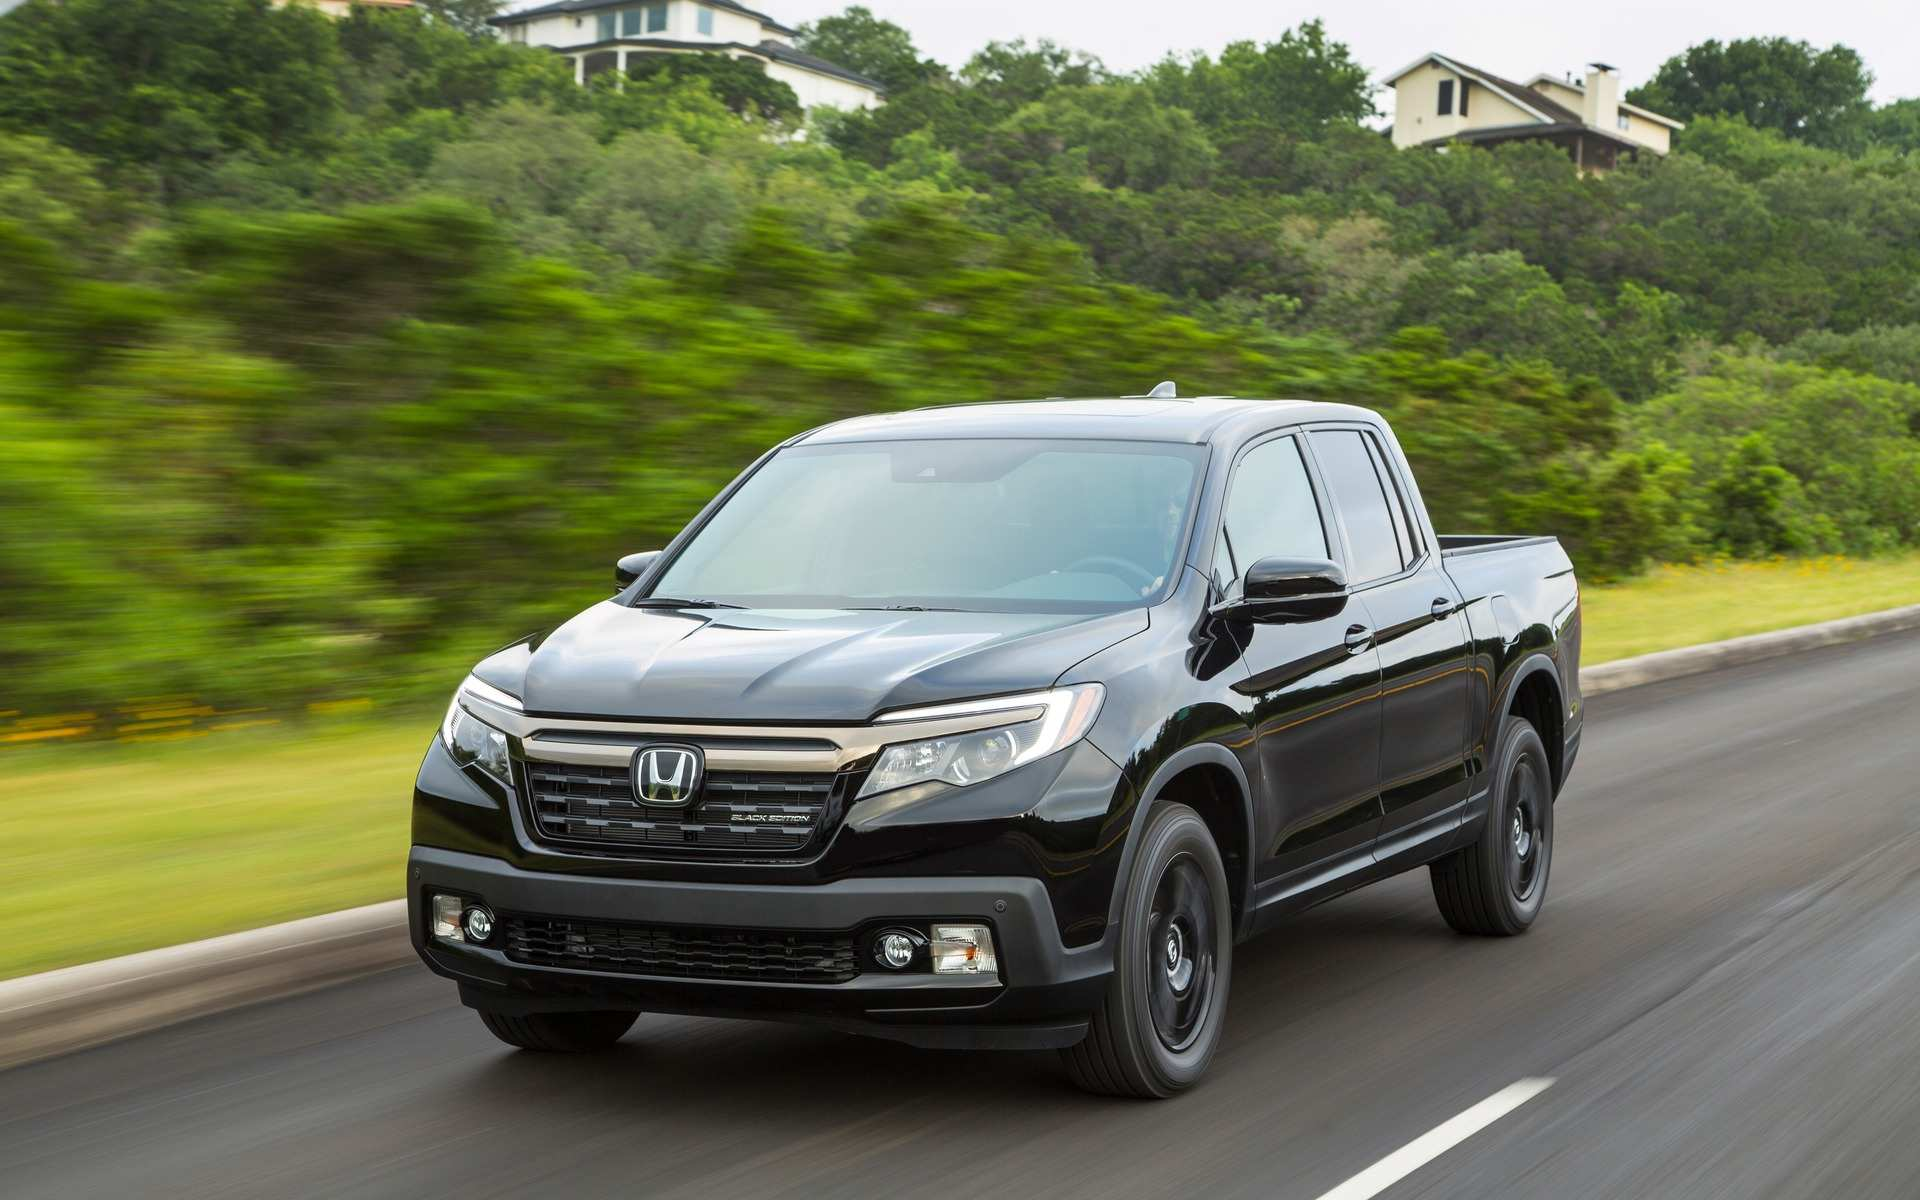 86 The Best 2019 Honda Ridgeline Incentives Price And Review